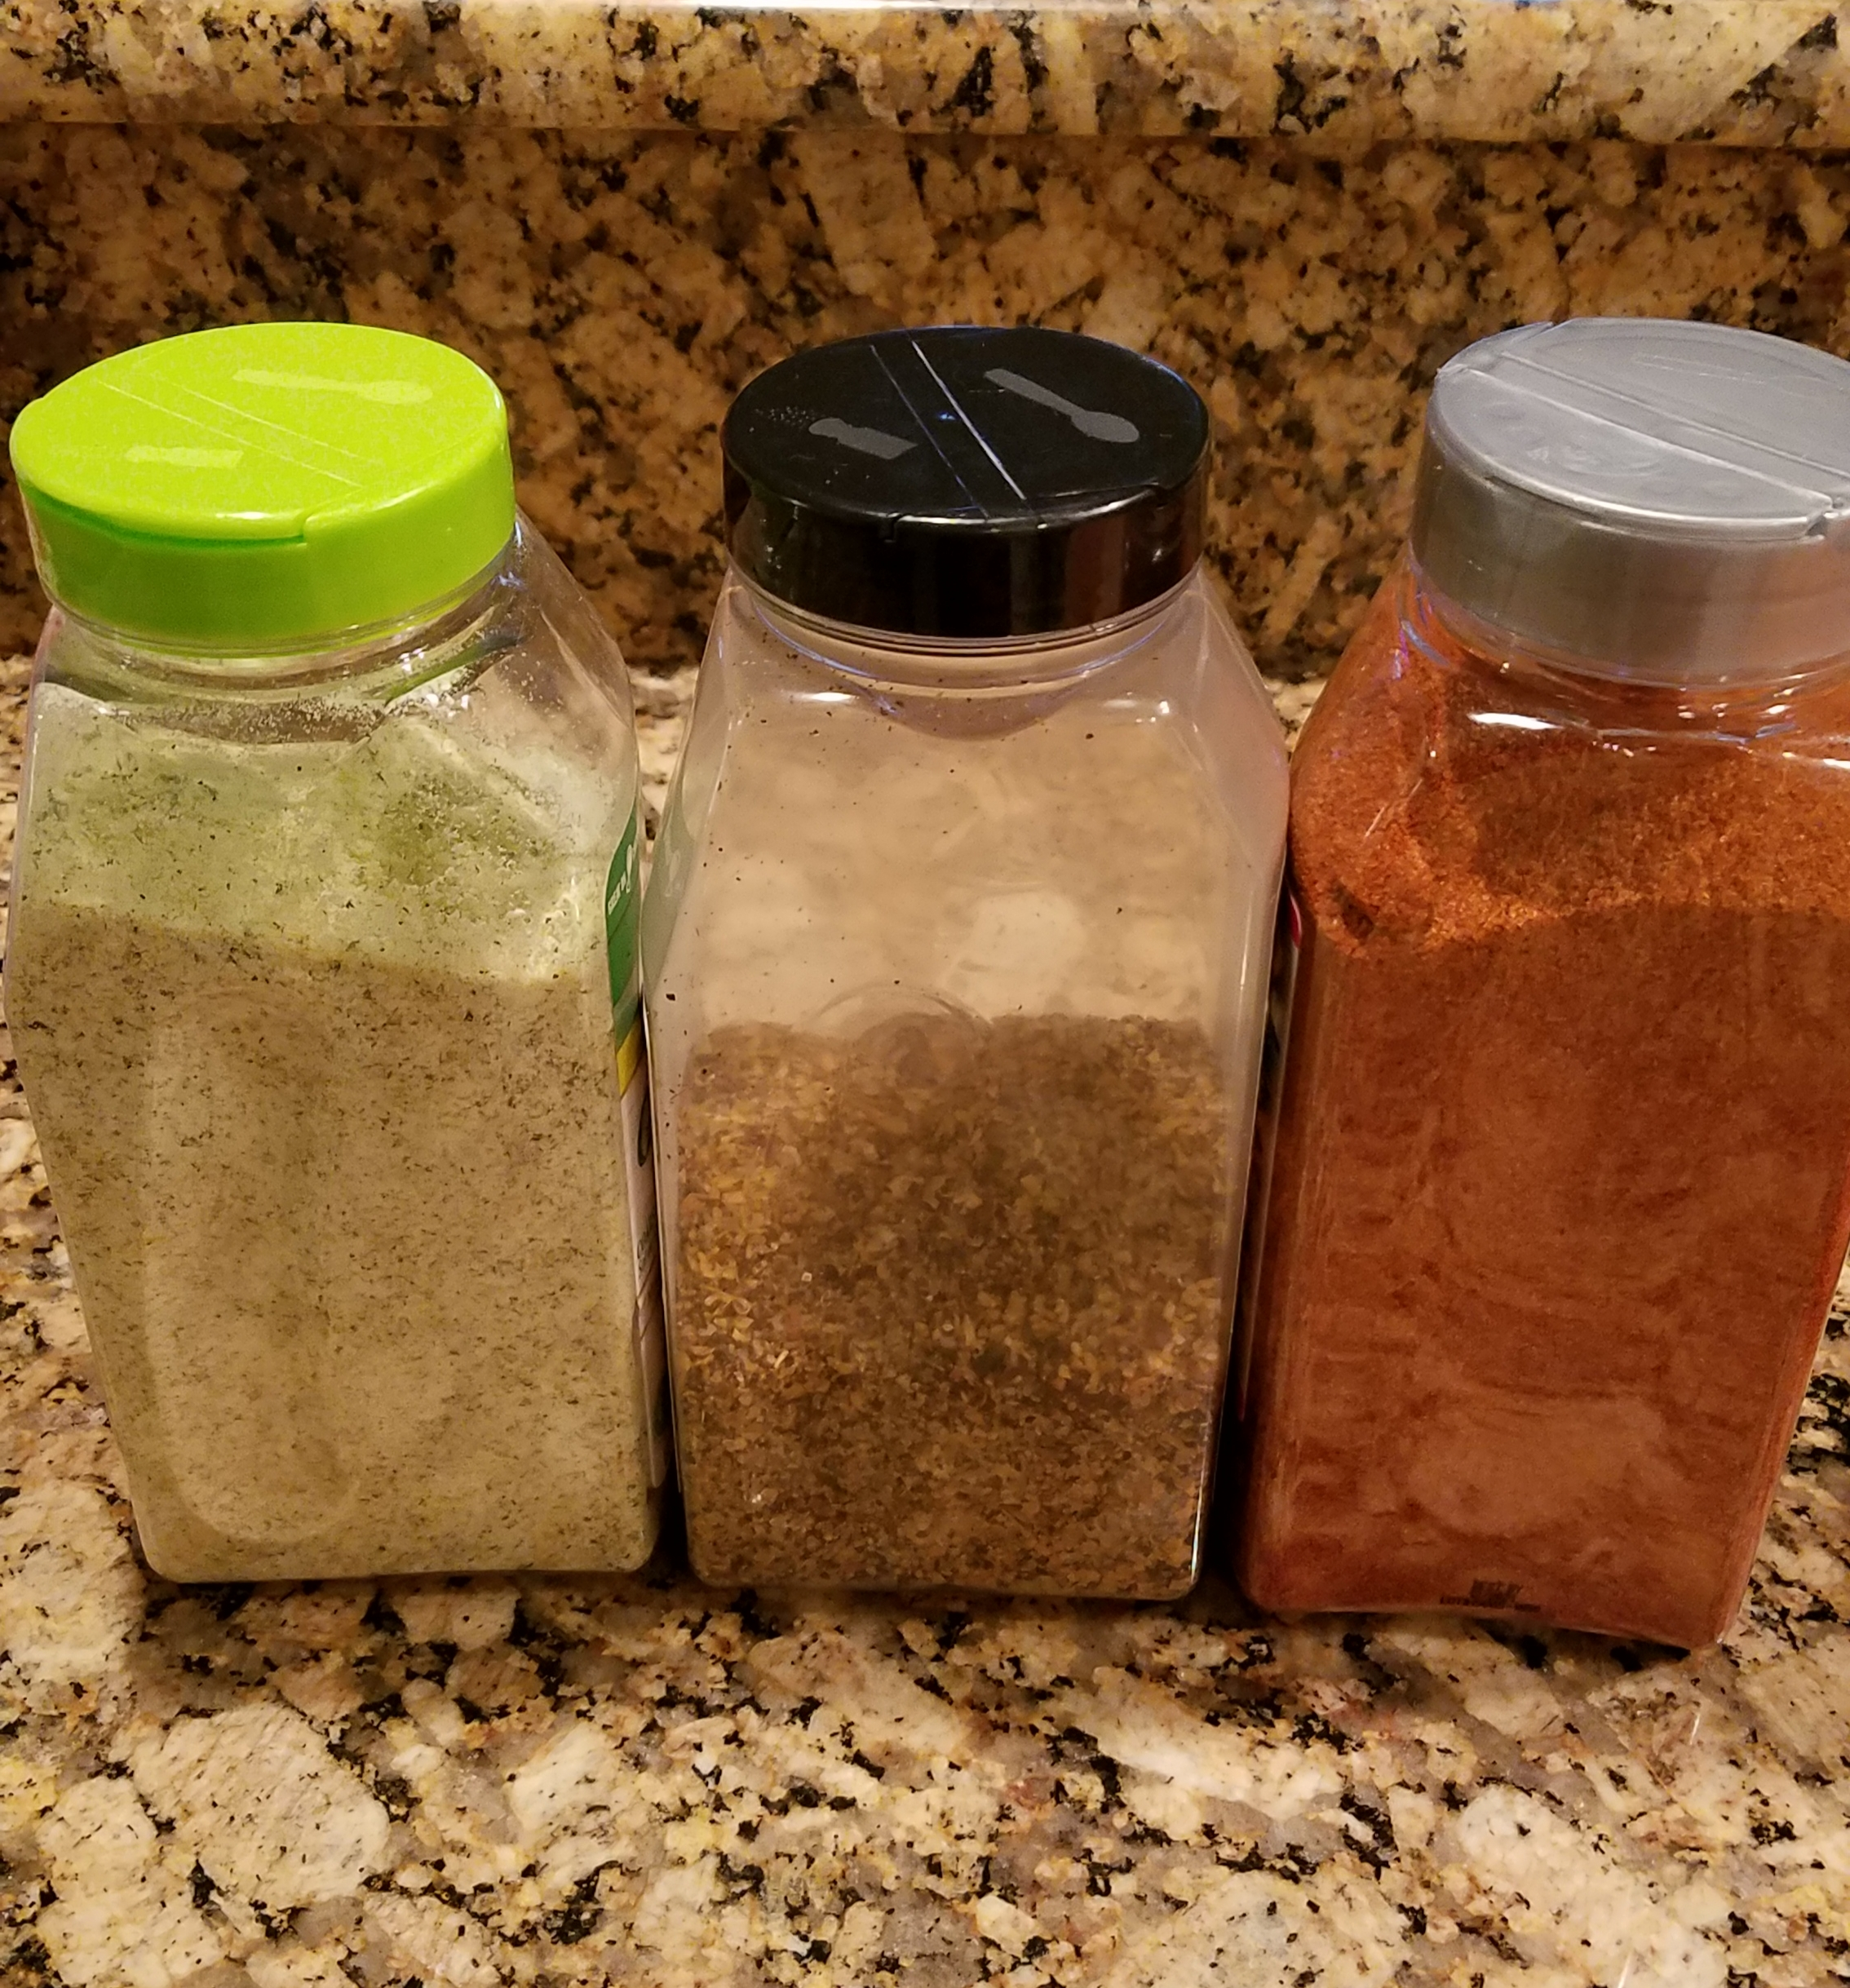 3 Seasonings That Completely Transform Your Meals